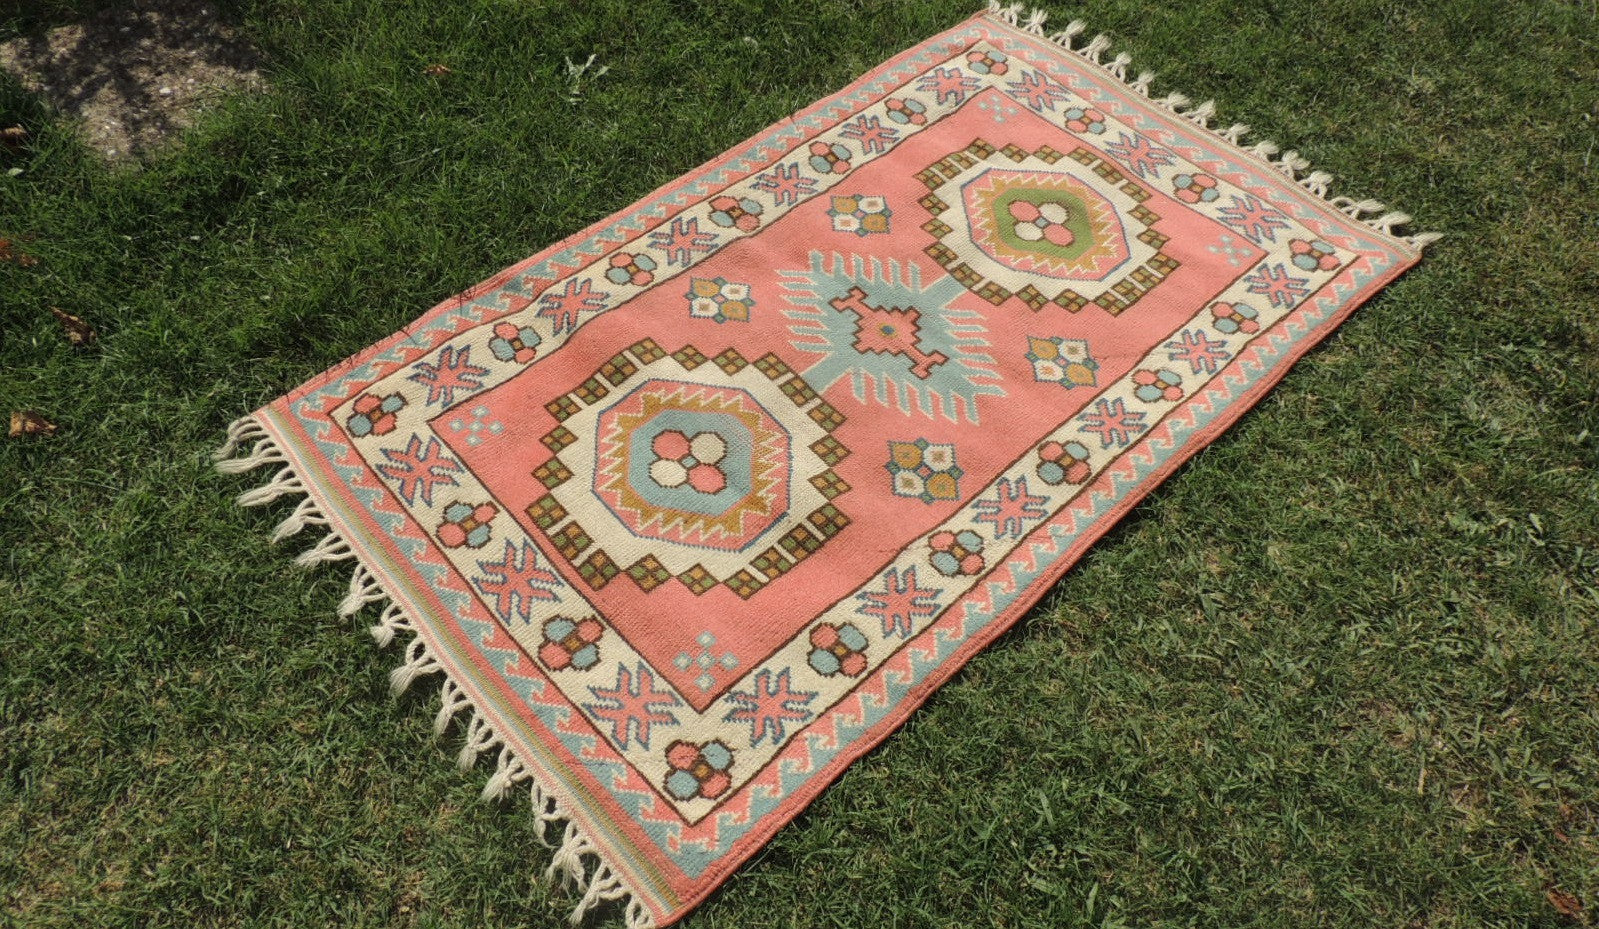 Pink Wool Turkish Area Rug Home Decor Carpet - bosphorusrugs  - 1